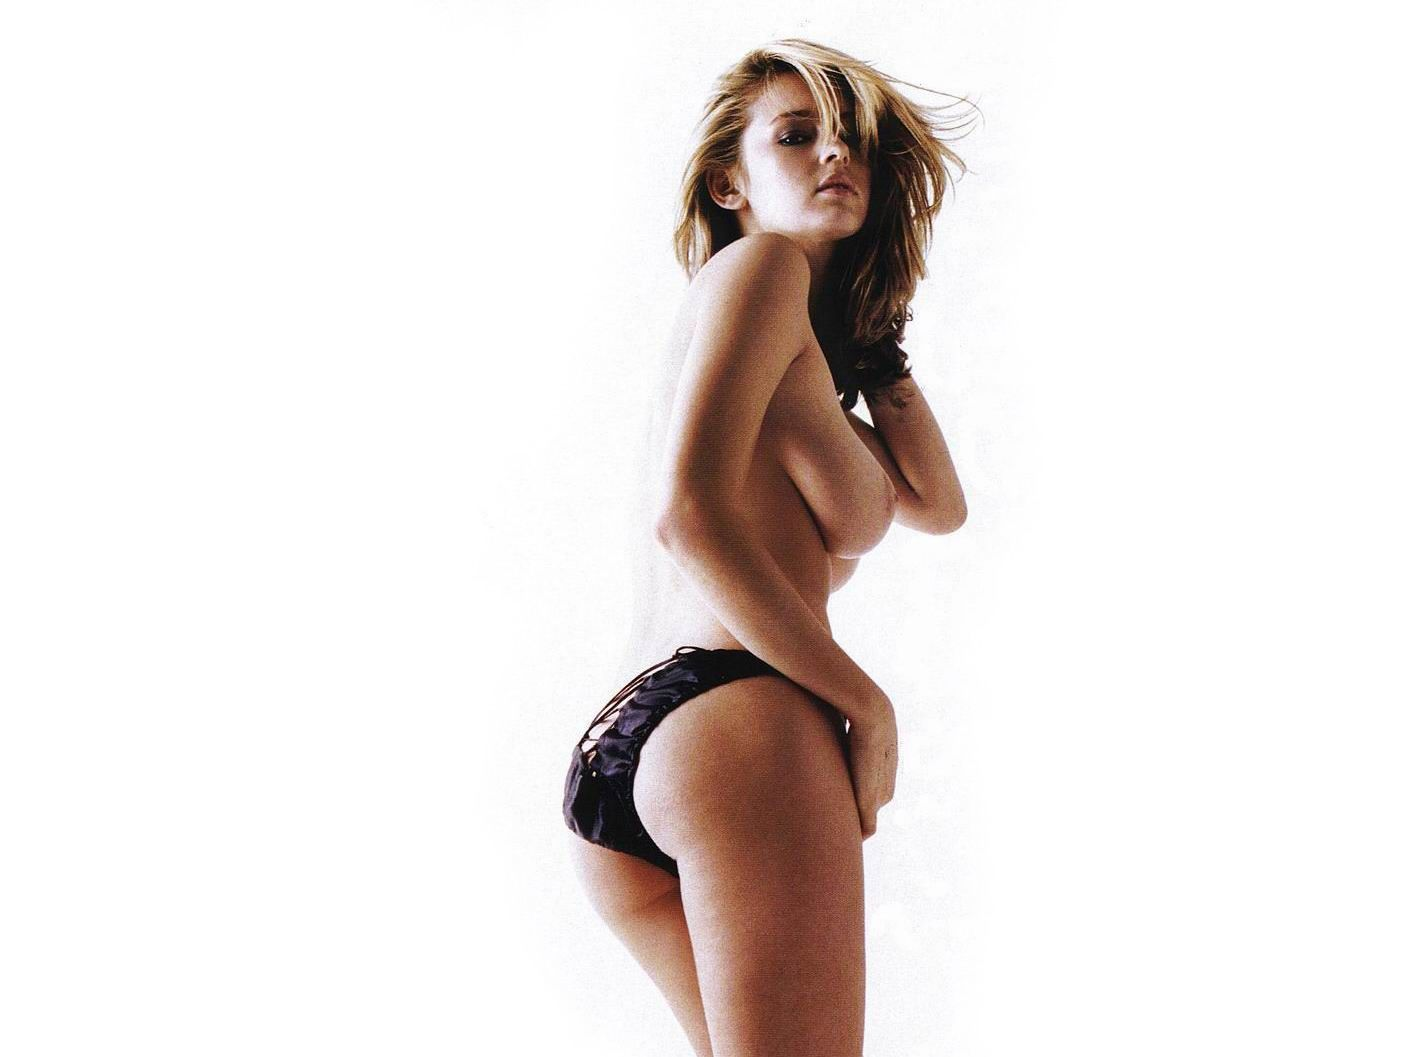 keeley hazell naked picture and sex movies